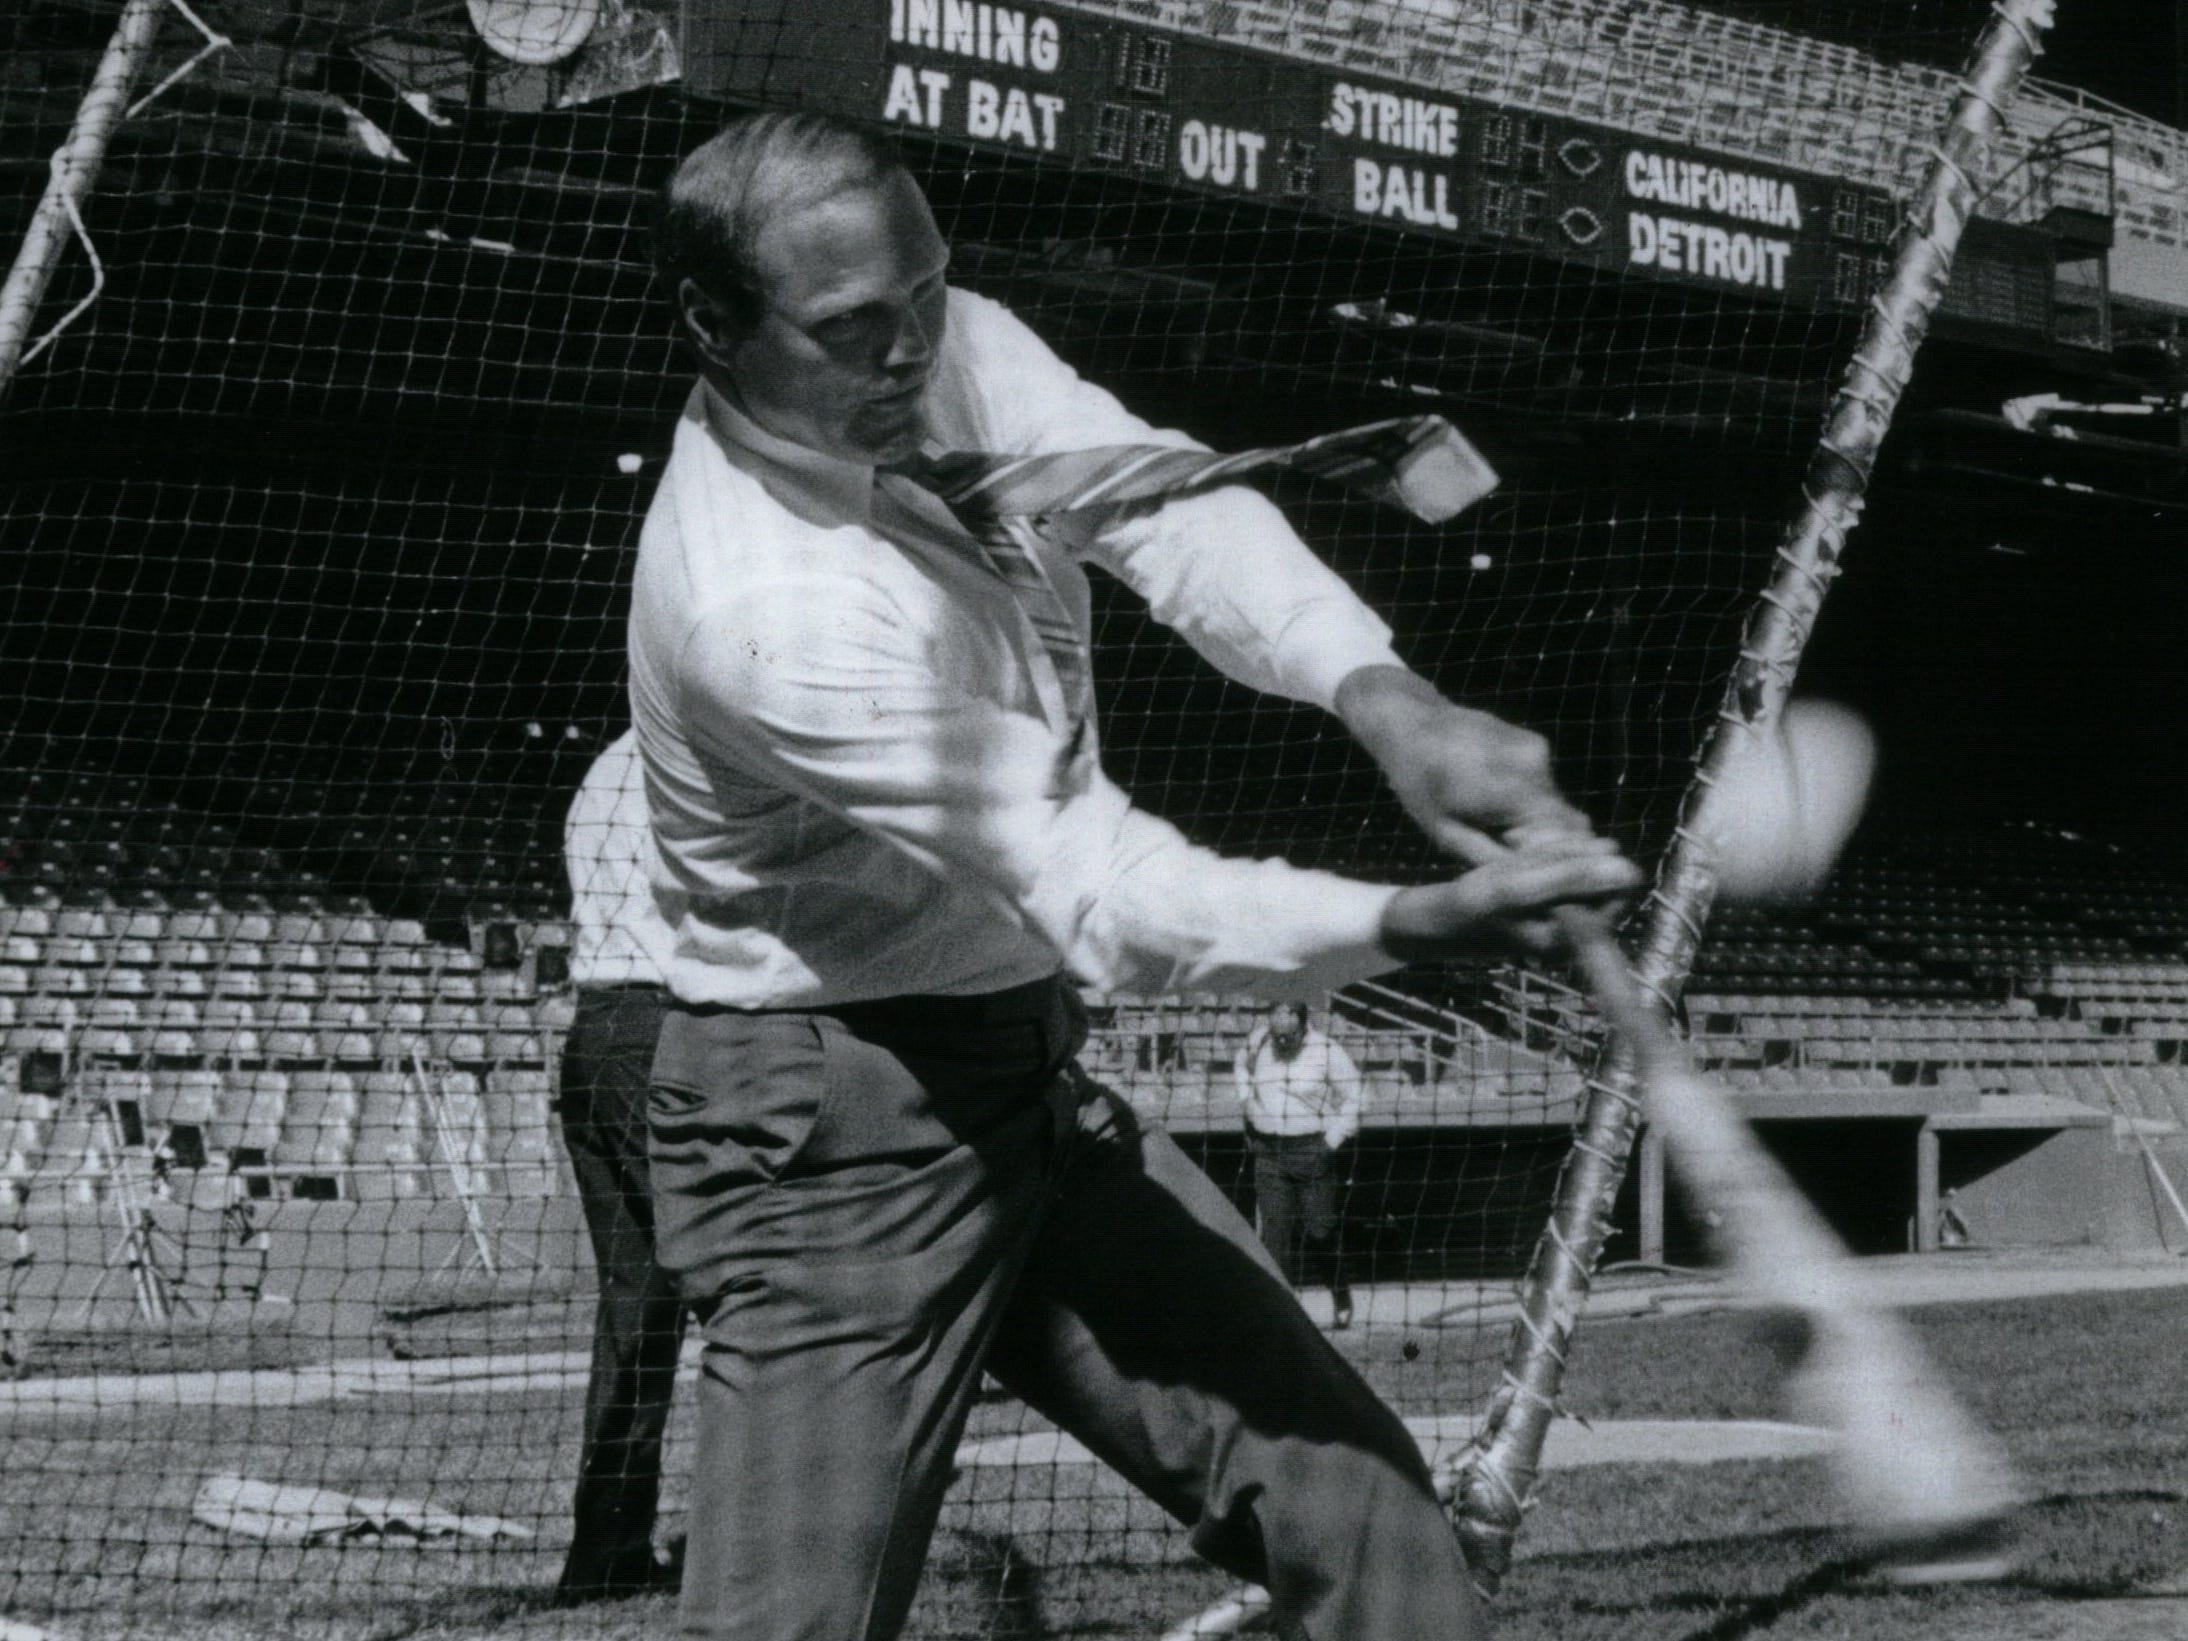 Former Tigers catcher Bill Freehan takes a practice swing on Aug. 19, 1986, in preparation for the old-timer's game at Tiger Stadium.